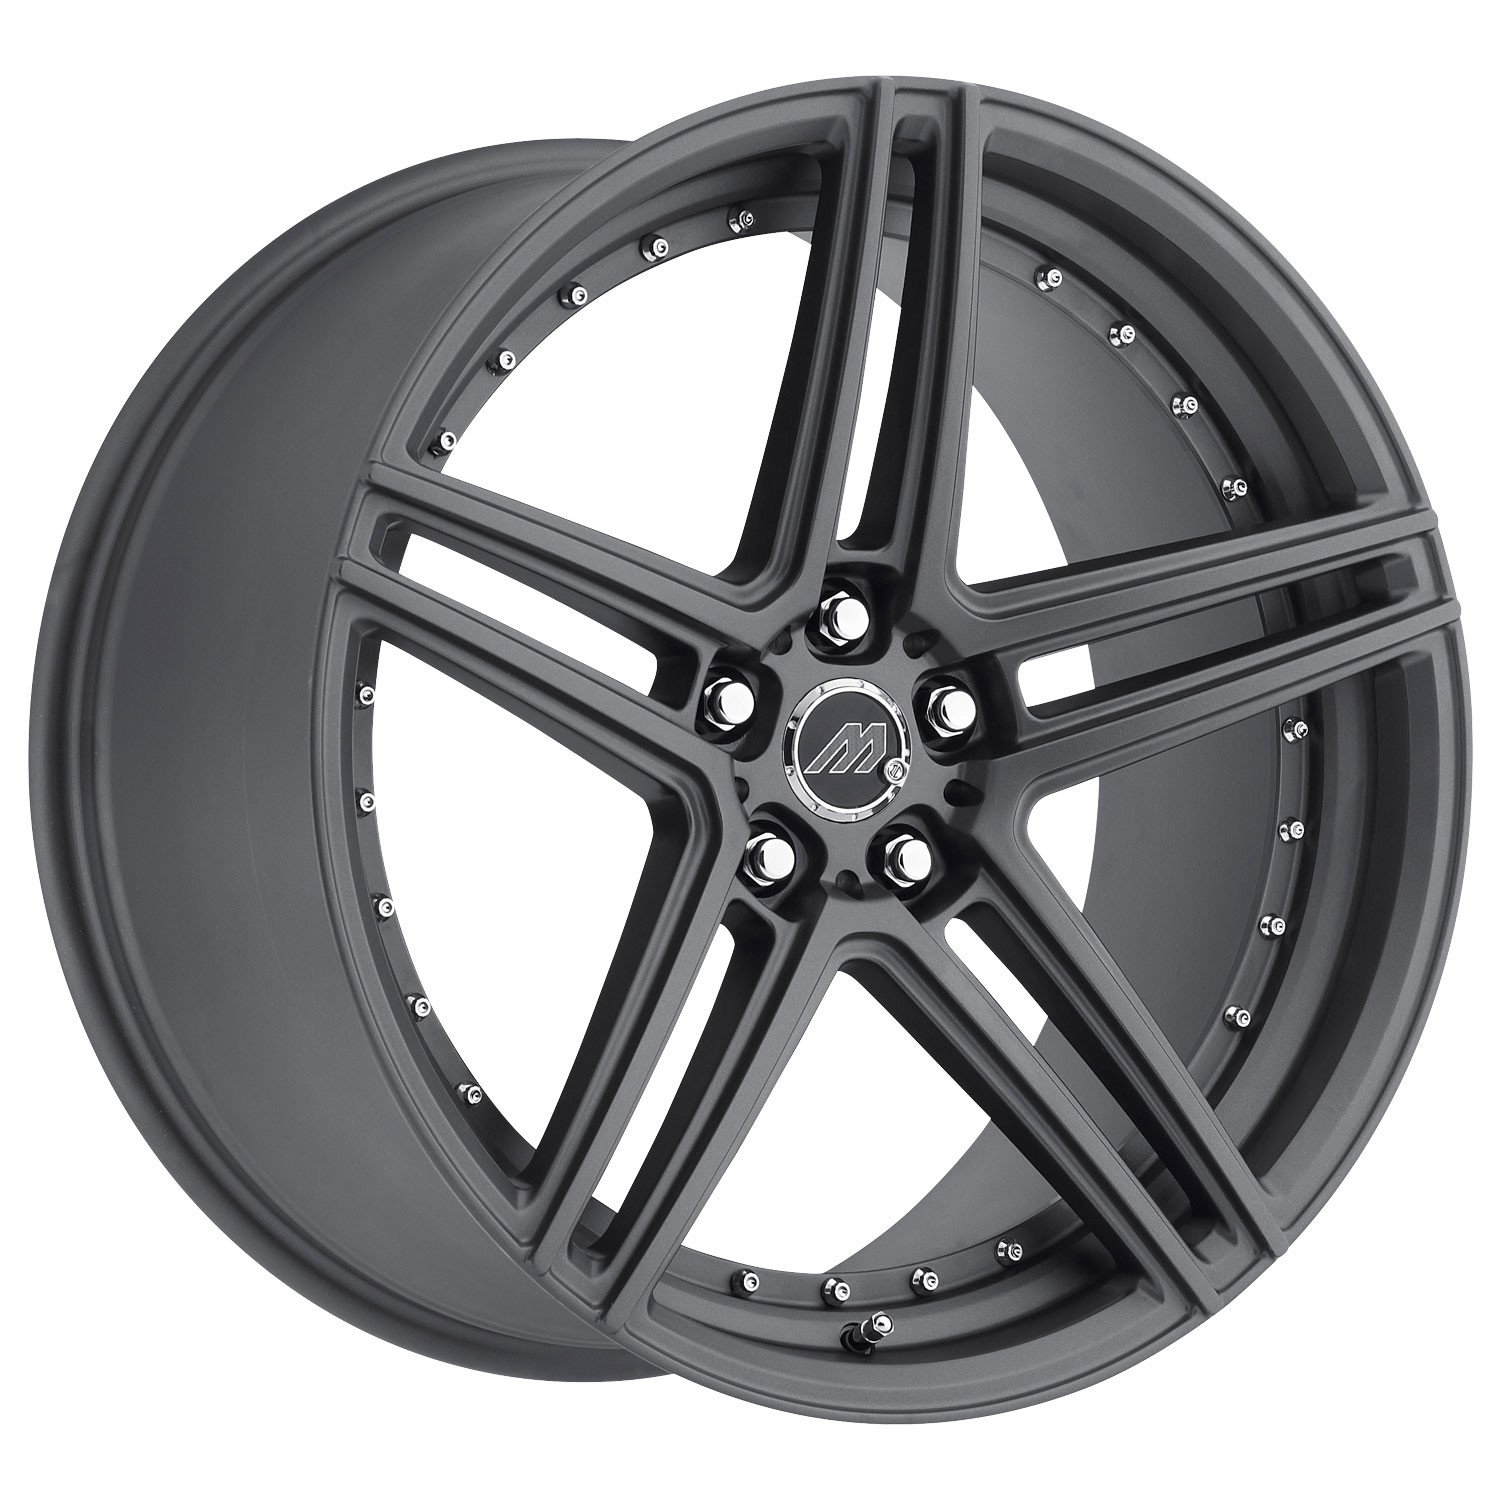 MACH MT2 Gunmetal Gray